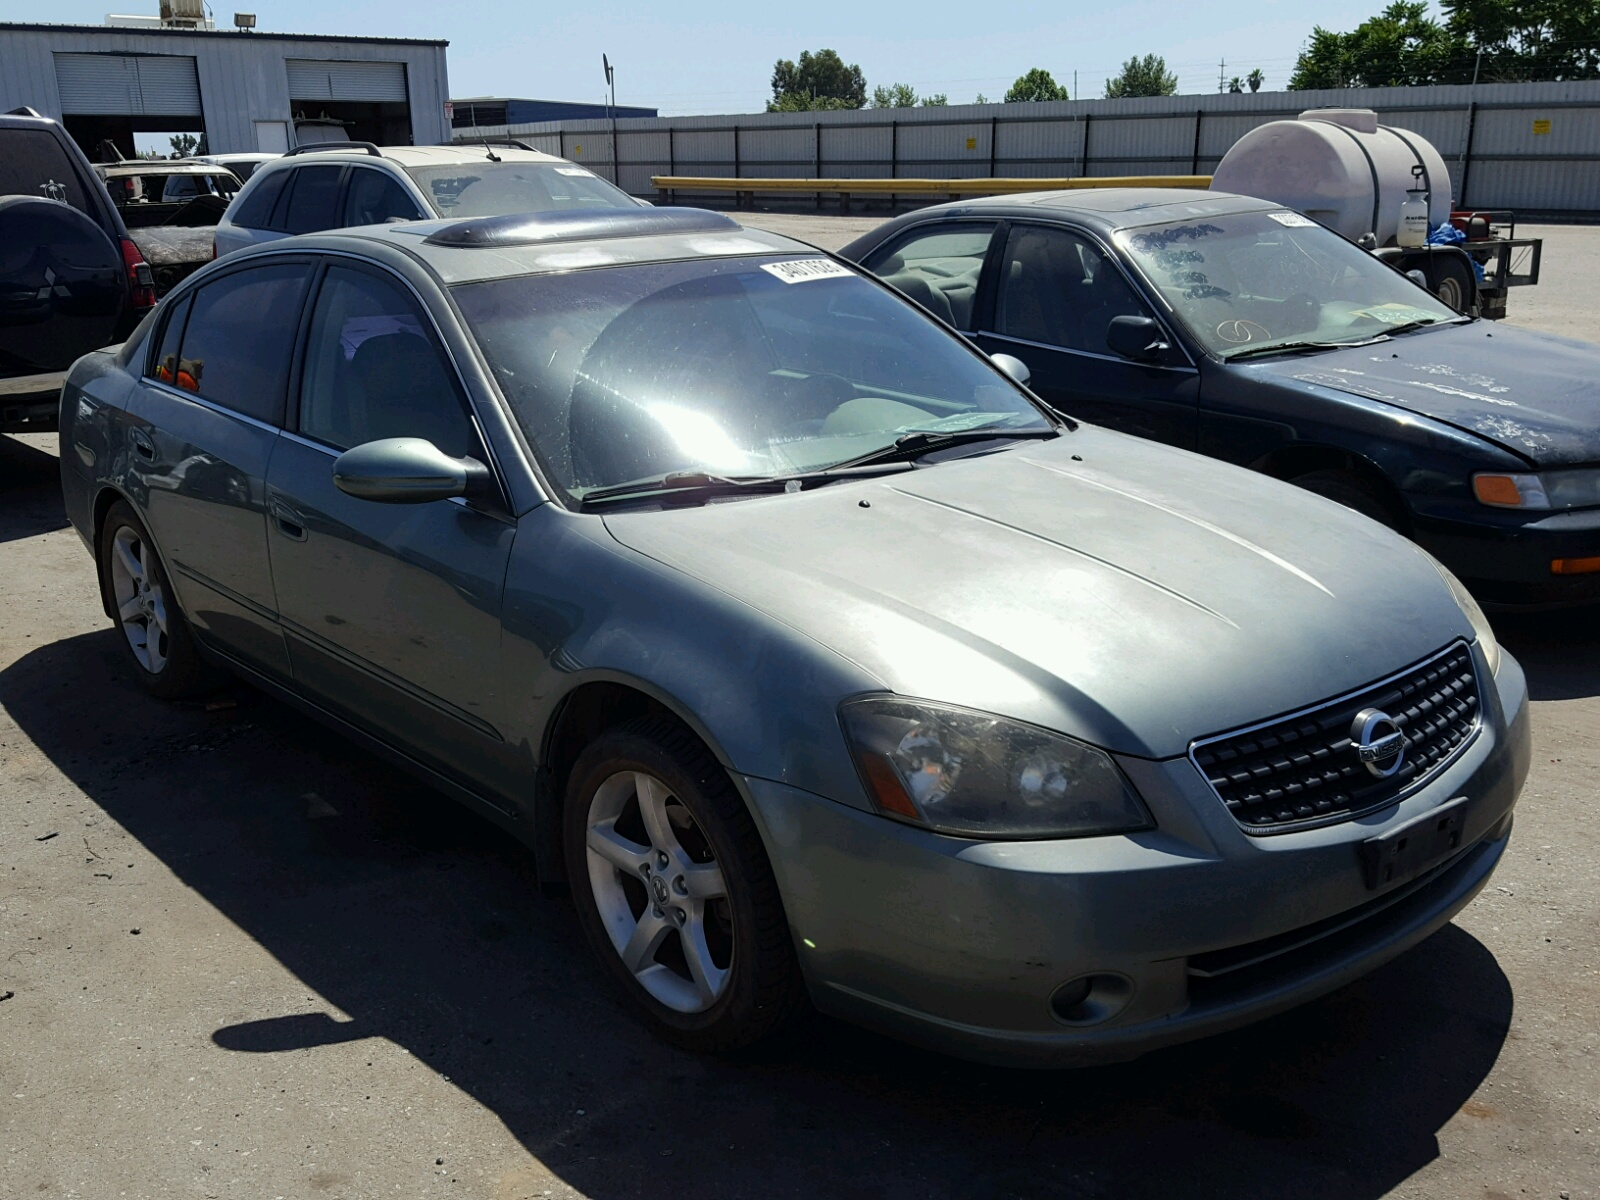 2005 Nissan Altima SE for sale at Copart Bakersfield CA Lot